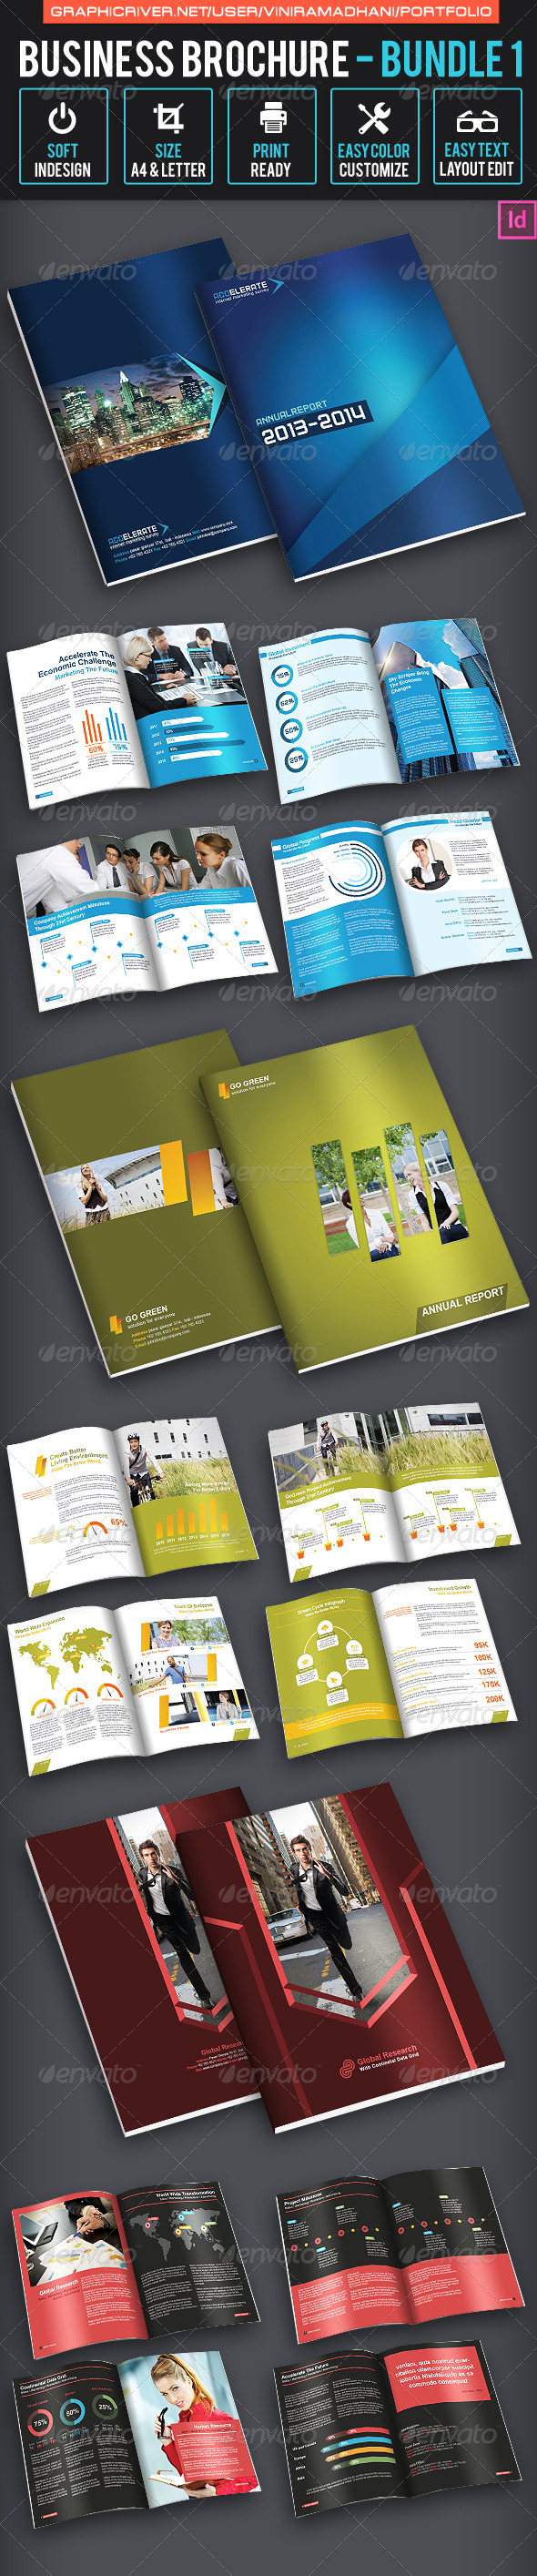 business-bundle1